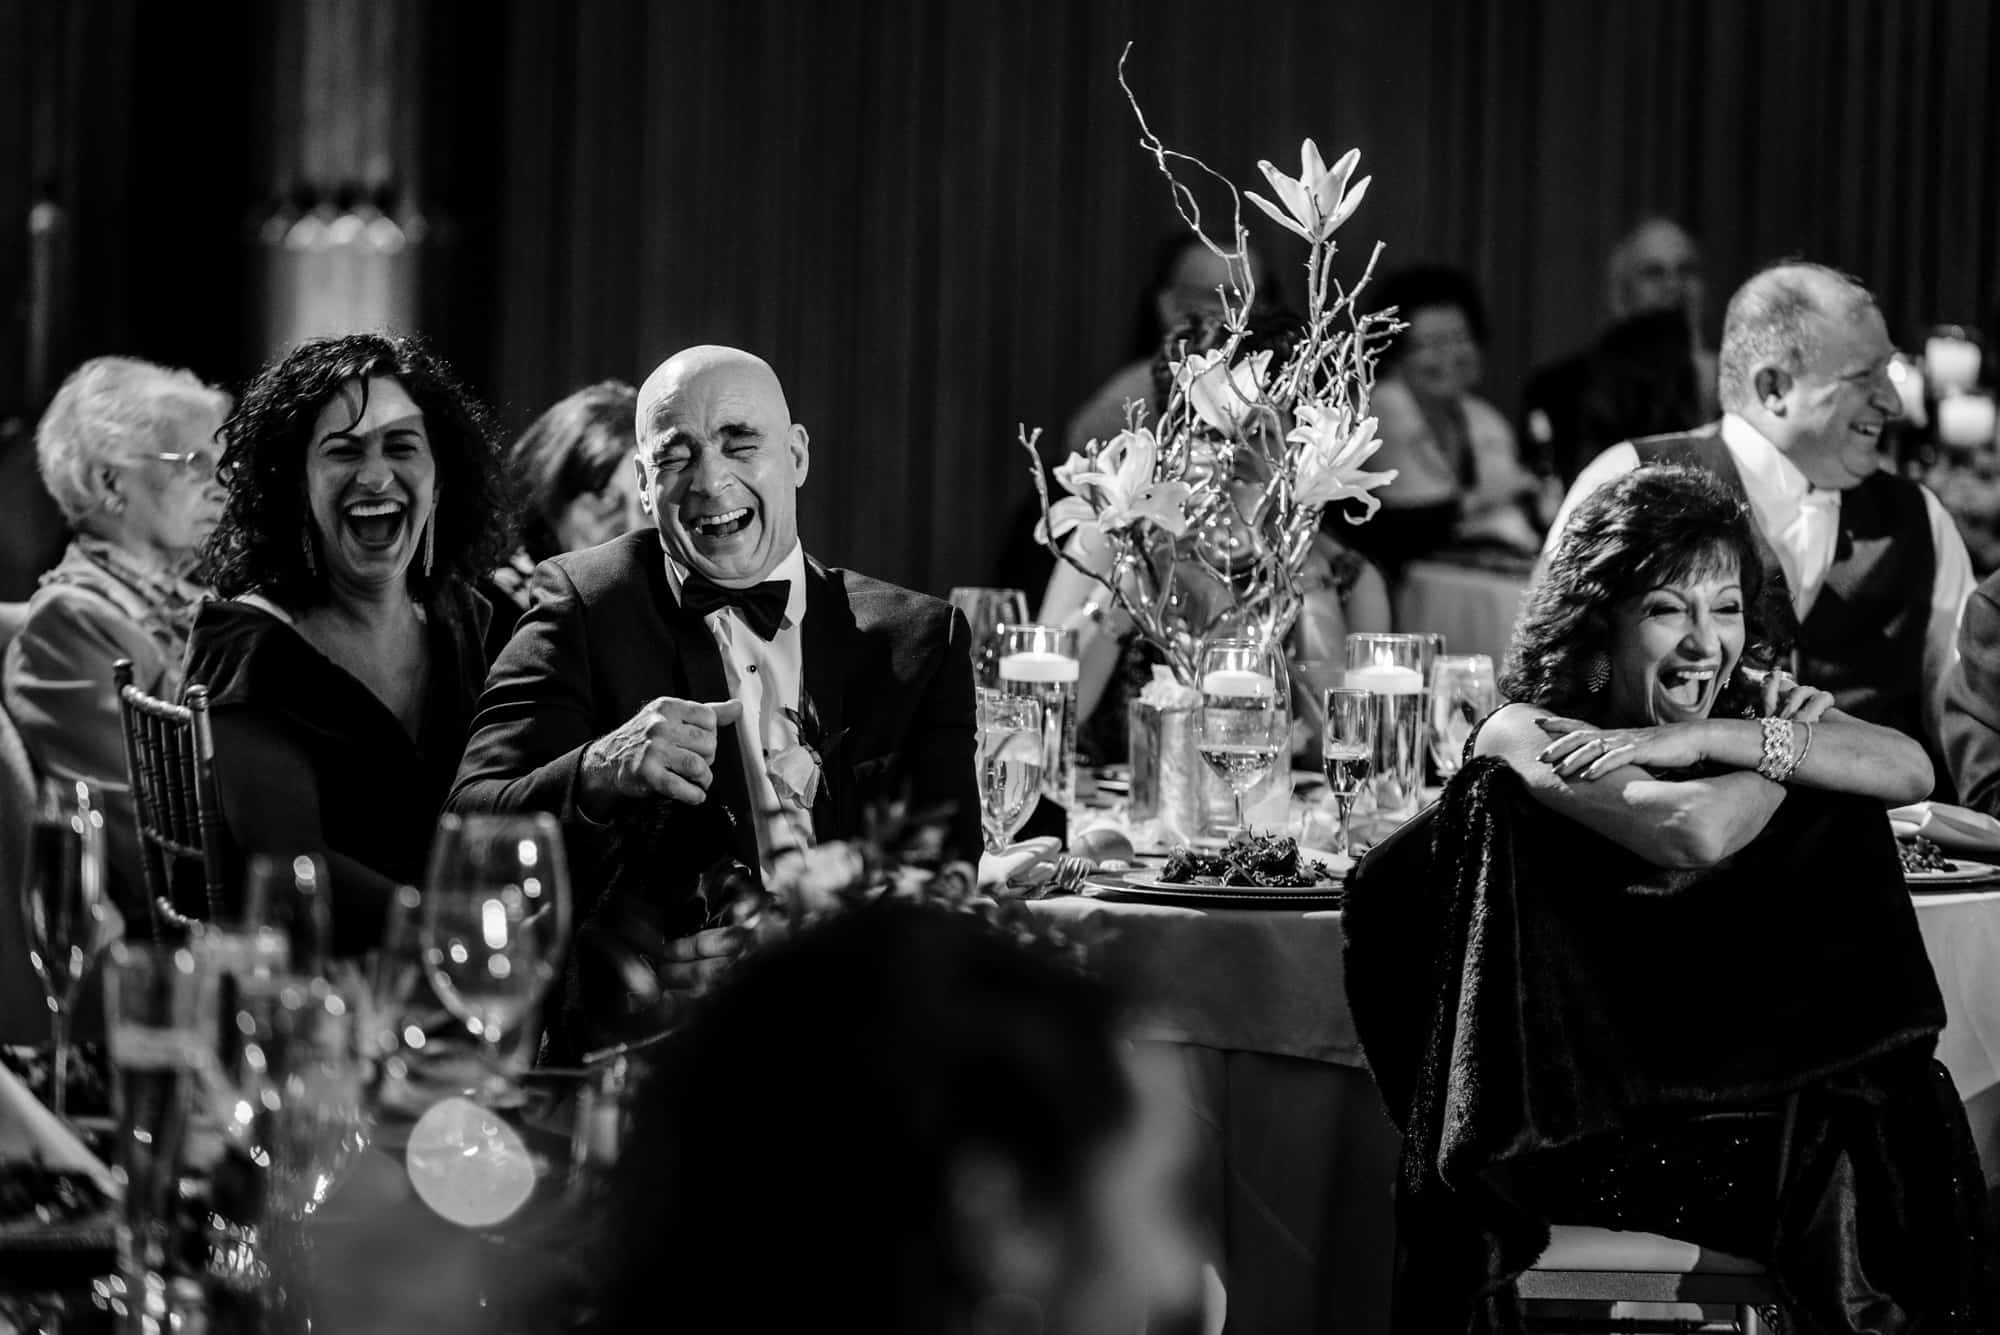 Candid image of wedding reception guests laughing